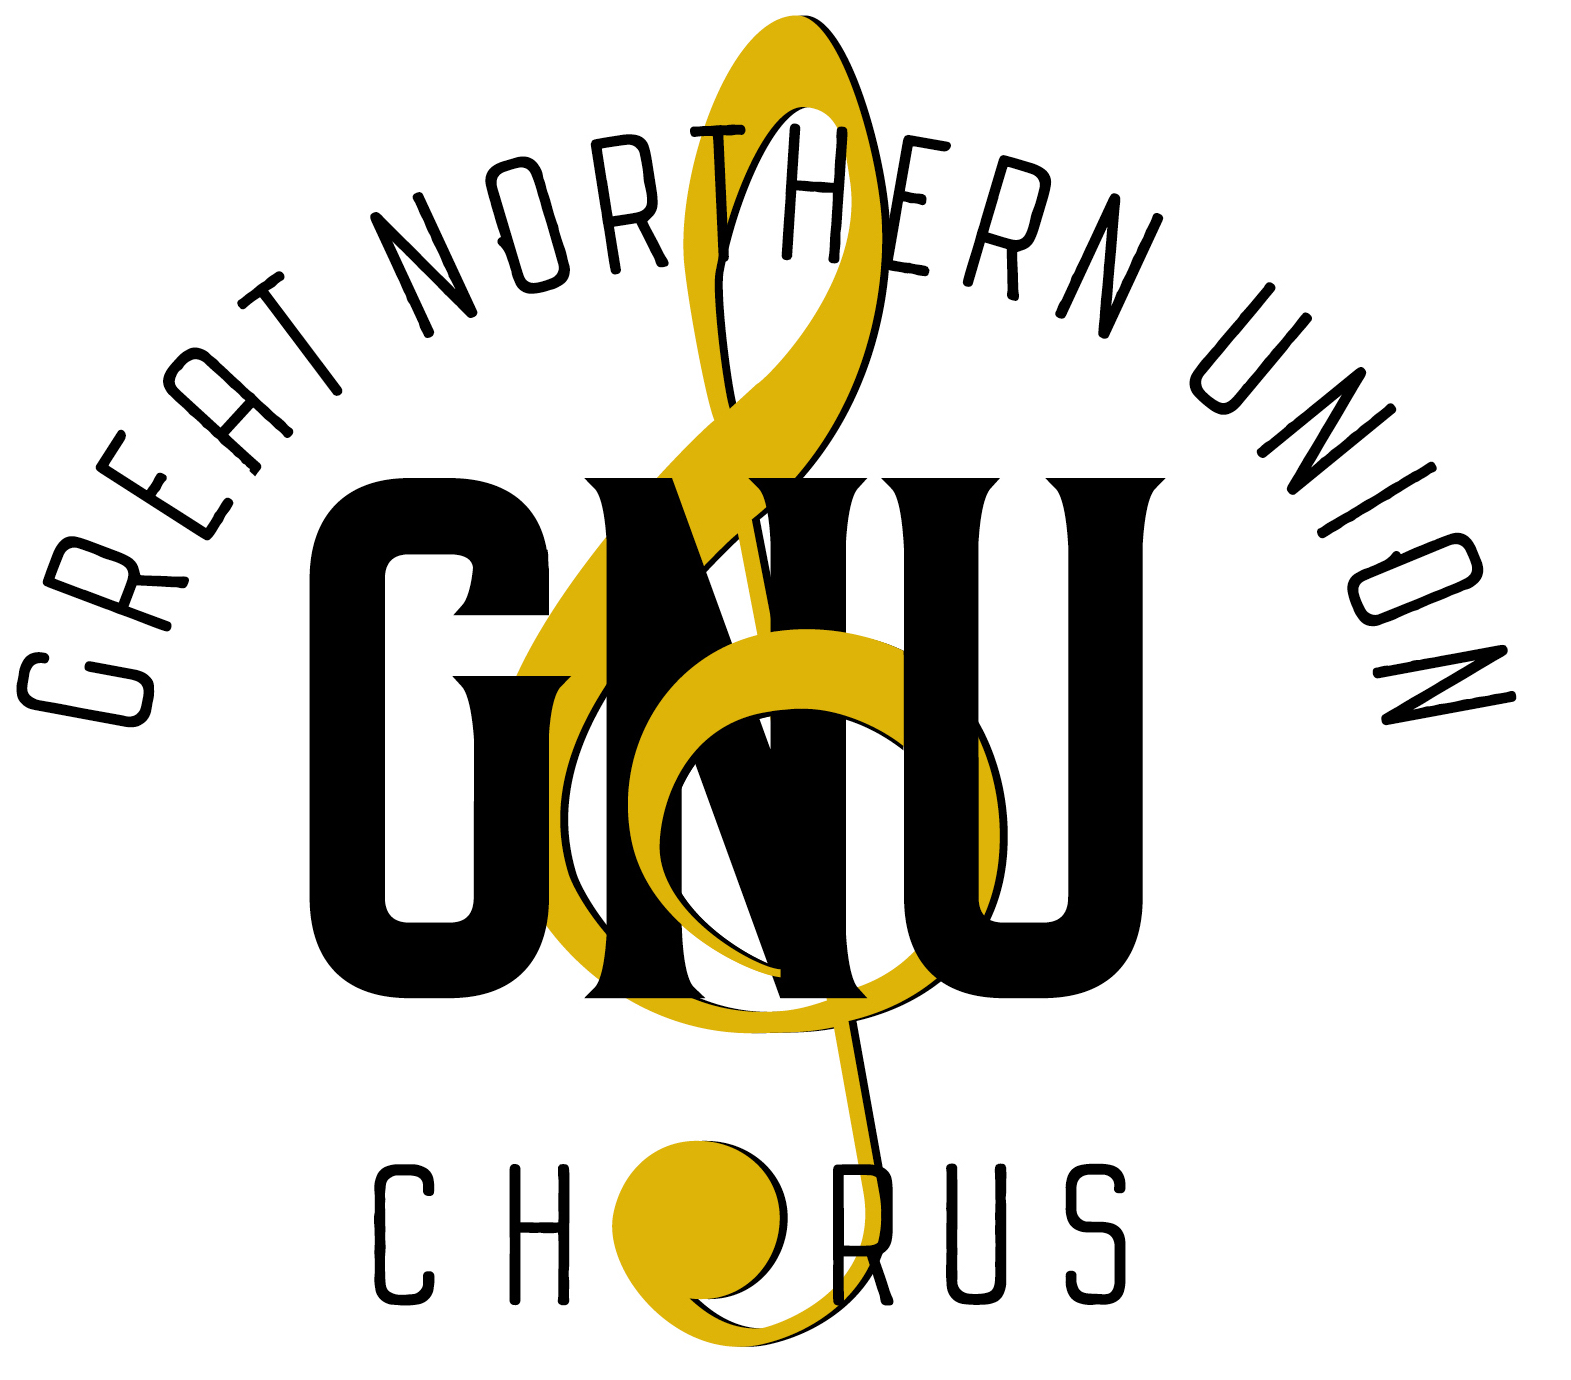 GNU logo with gold treble clef sign and black text